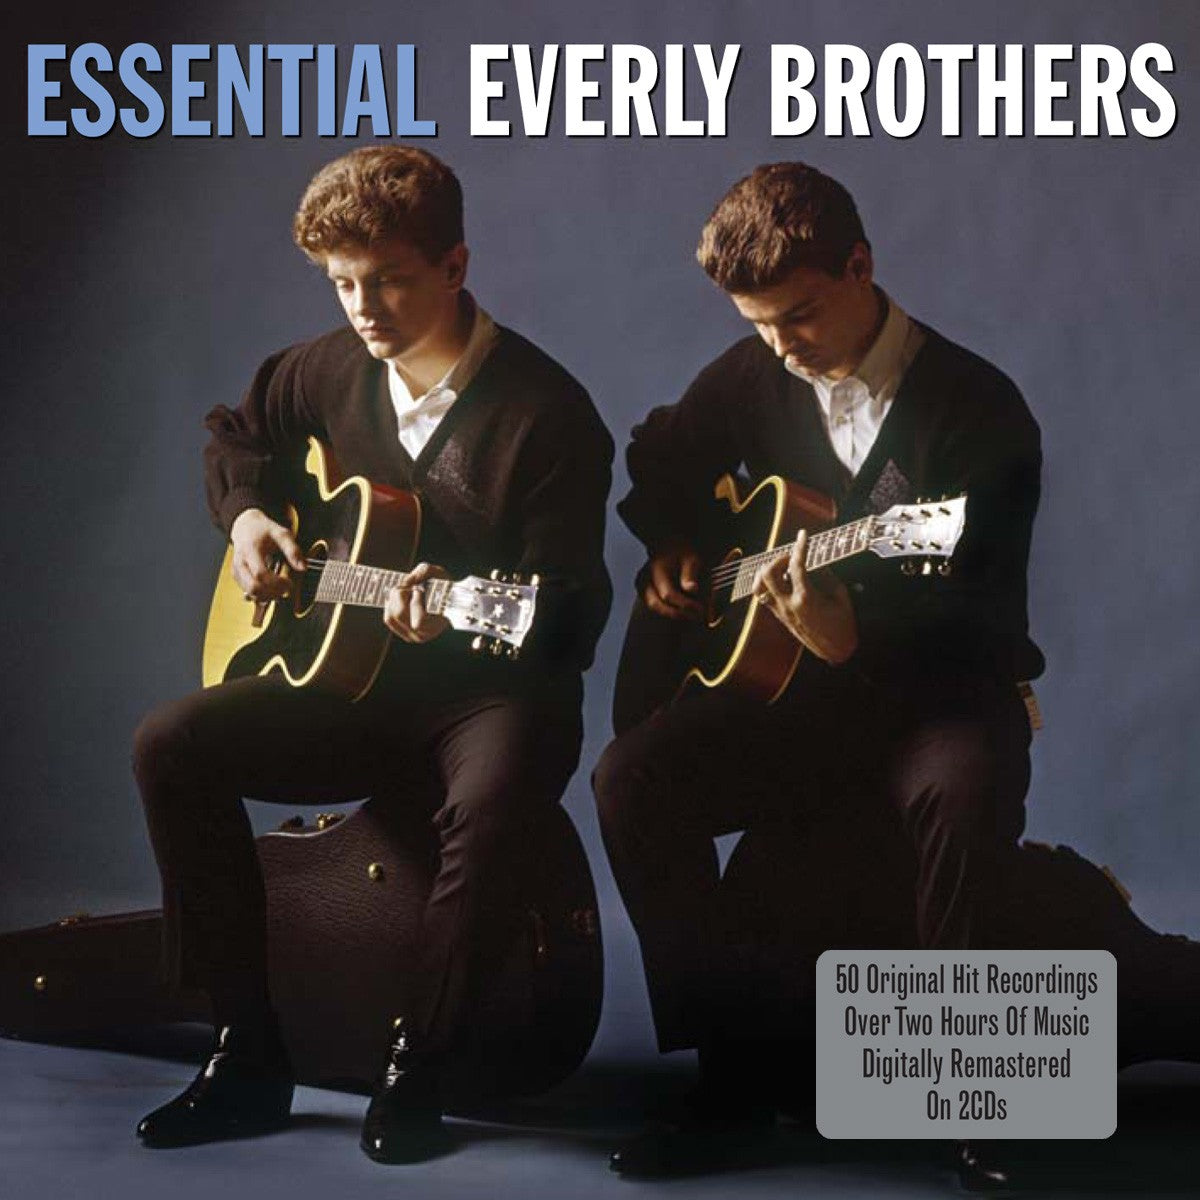 EVERLY BROTHERS: Essential (2 CDs)